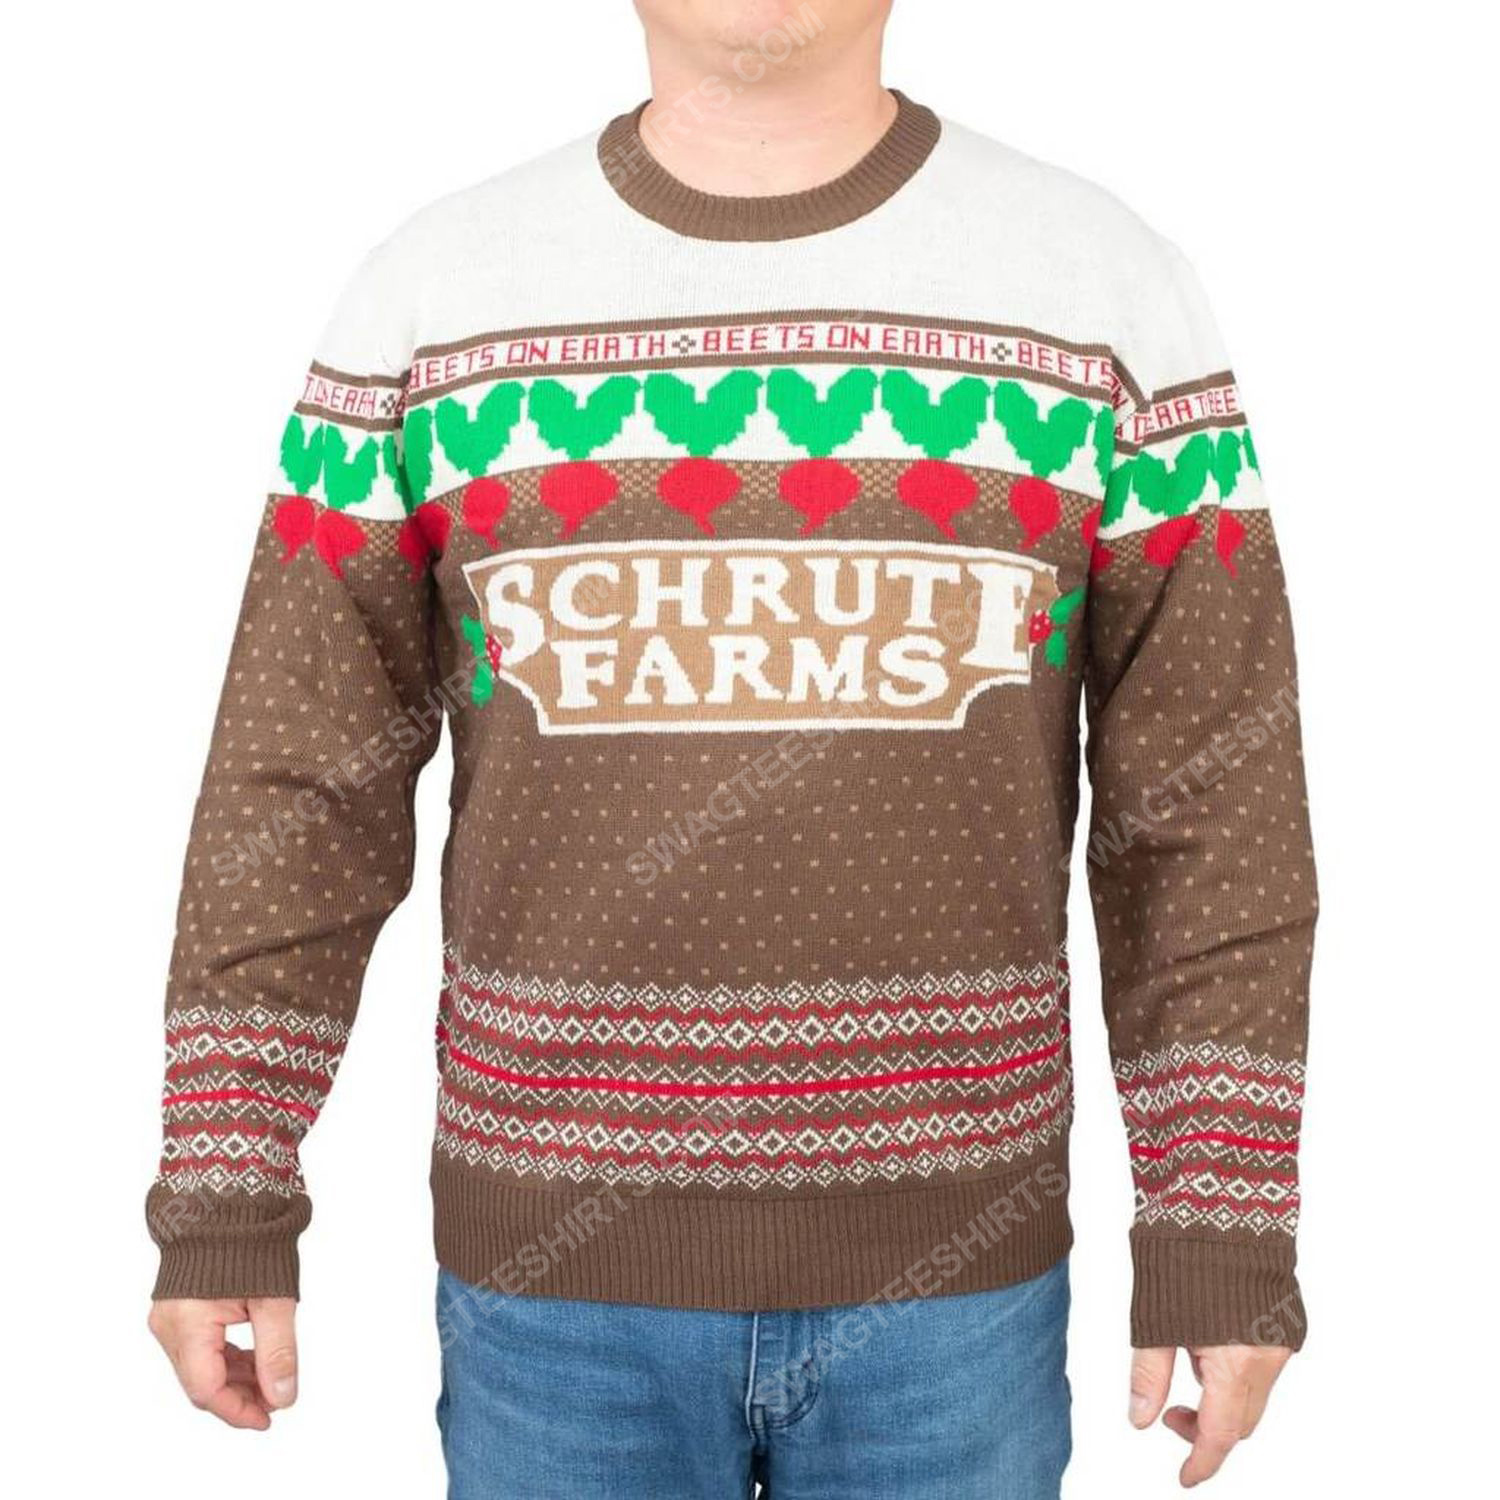 The office dwight schrute farms beets full print ugly christmas sweater 2 - Copy